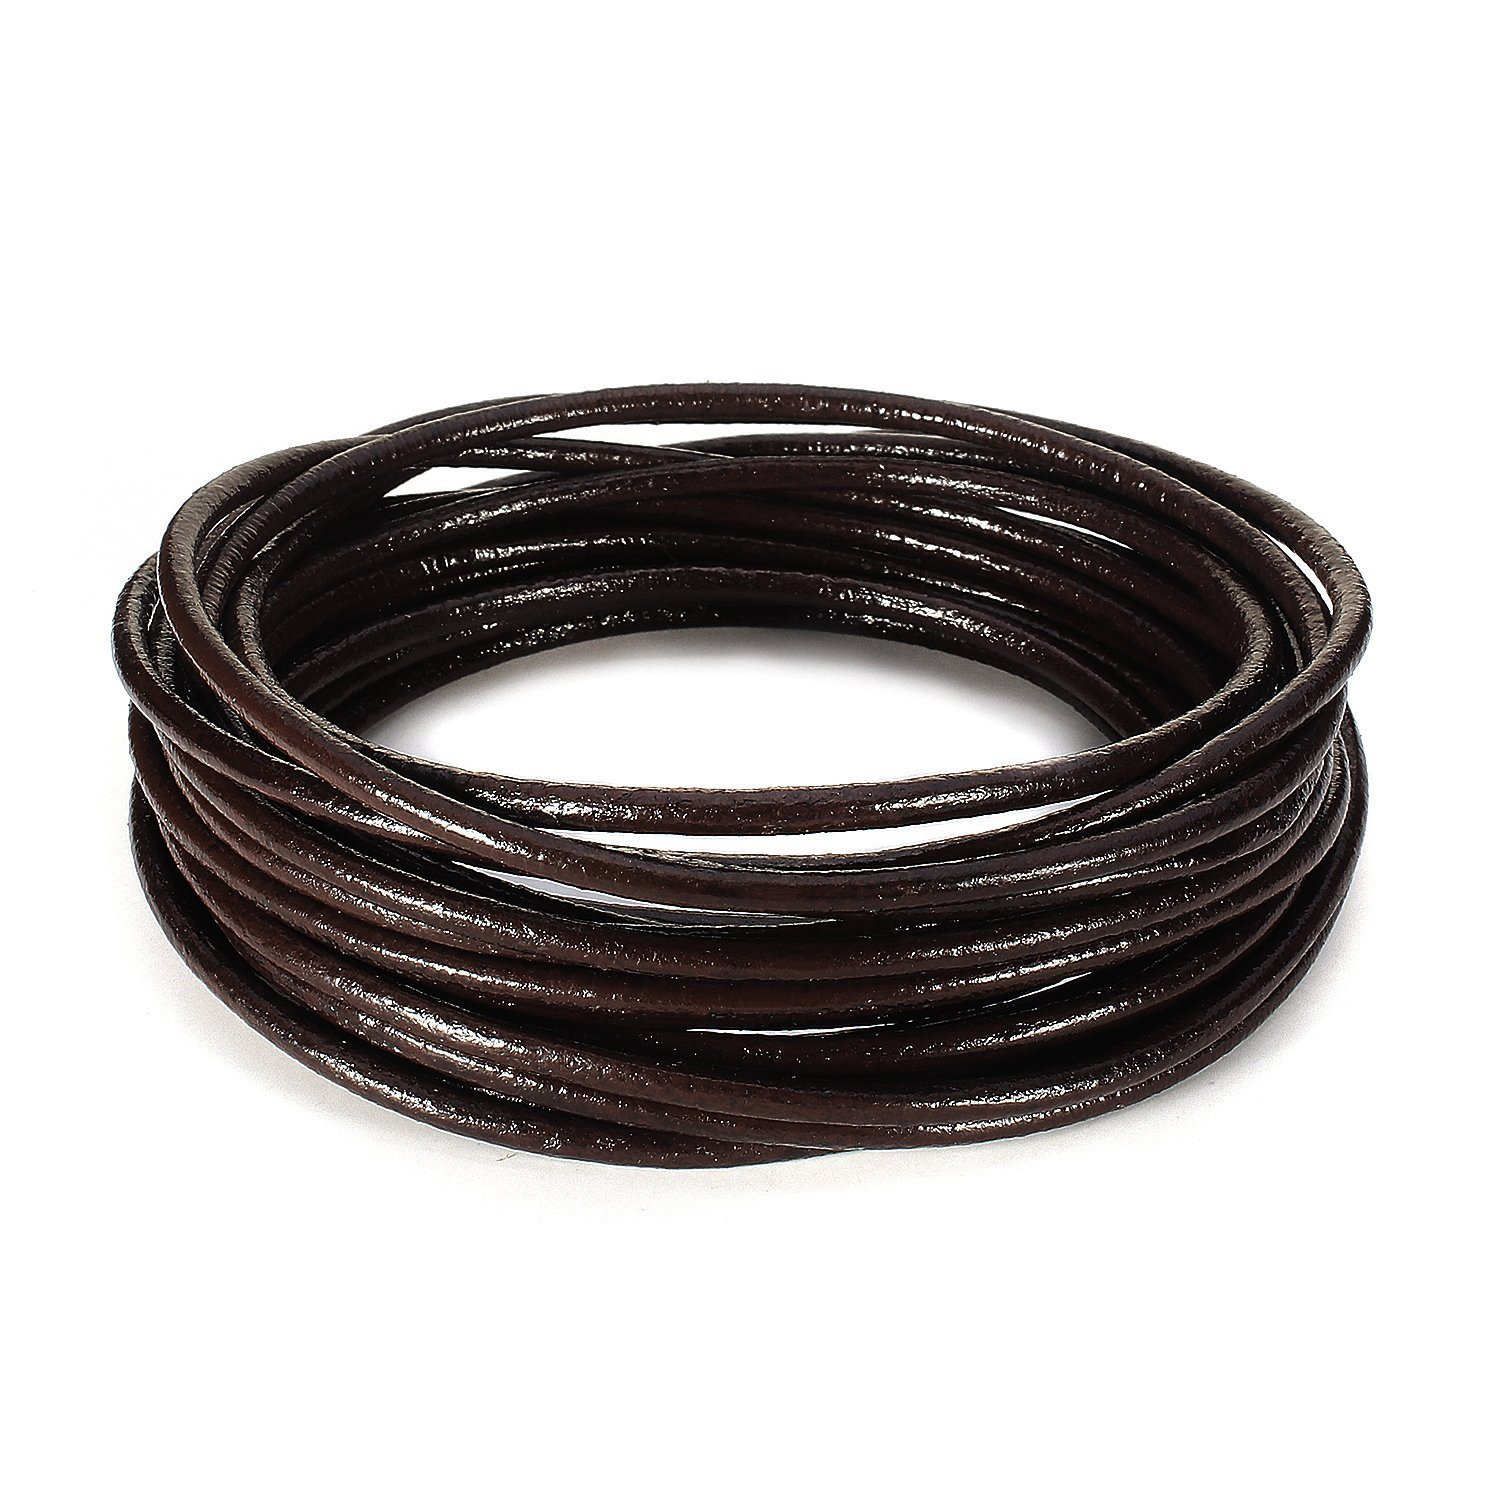 BEADNOVA 3mm Genuine Round Leather Cord Leather Strips For Jewelry Making Bracelet Necklace Beading, 5 Meters/5.5 Yards, Black